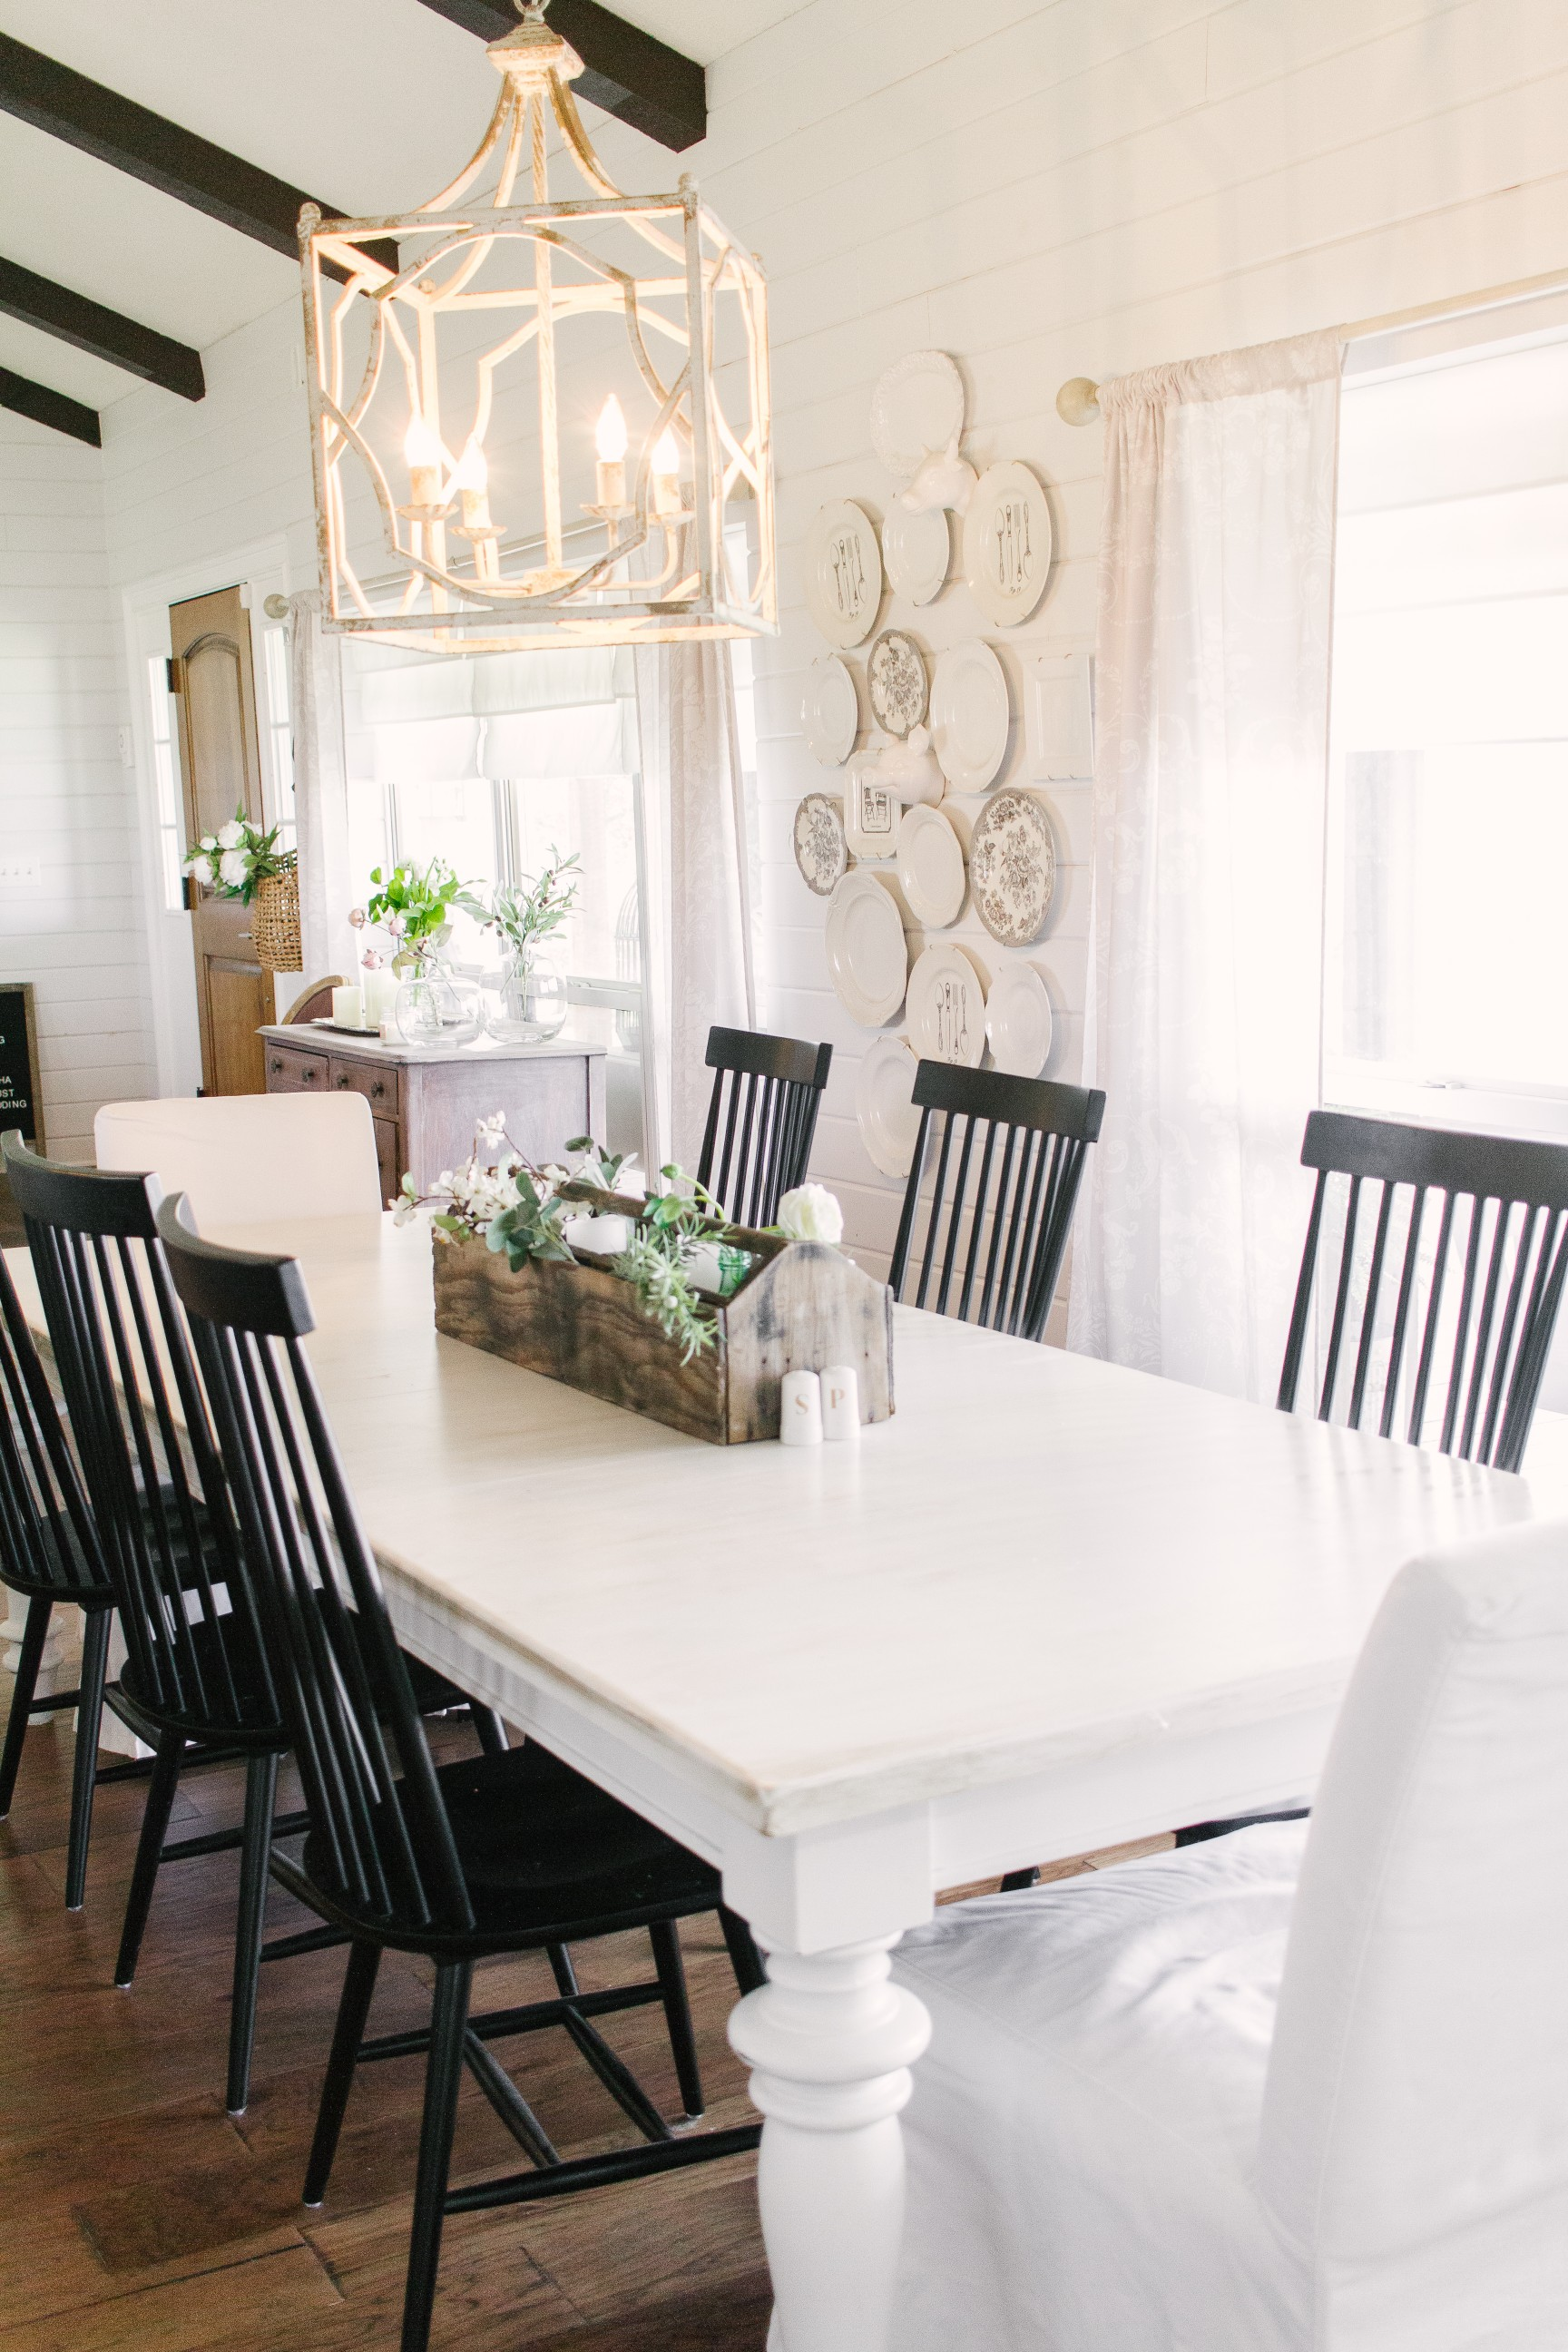 My Little White Barn Home Tour  - Spring Decor Inspiration - Dining Room Table